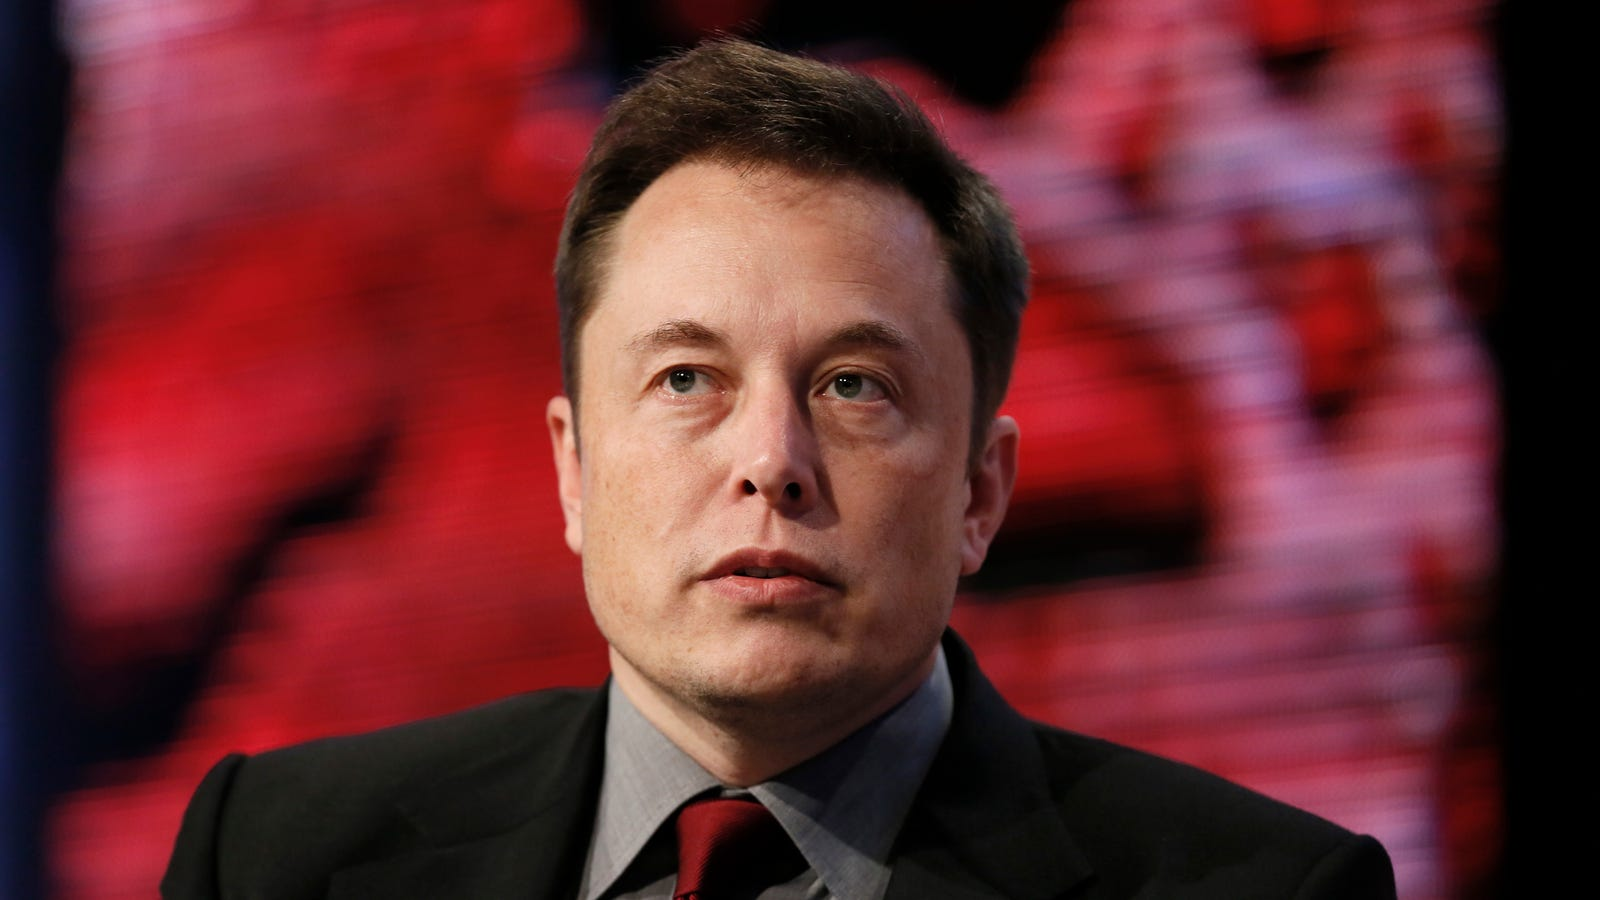 Report: Elon Musk, Tesla Exec Discussed Promoting Union Advocates Rather Than 'Work to Pull in the UAW'